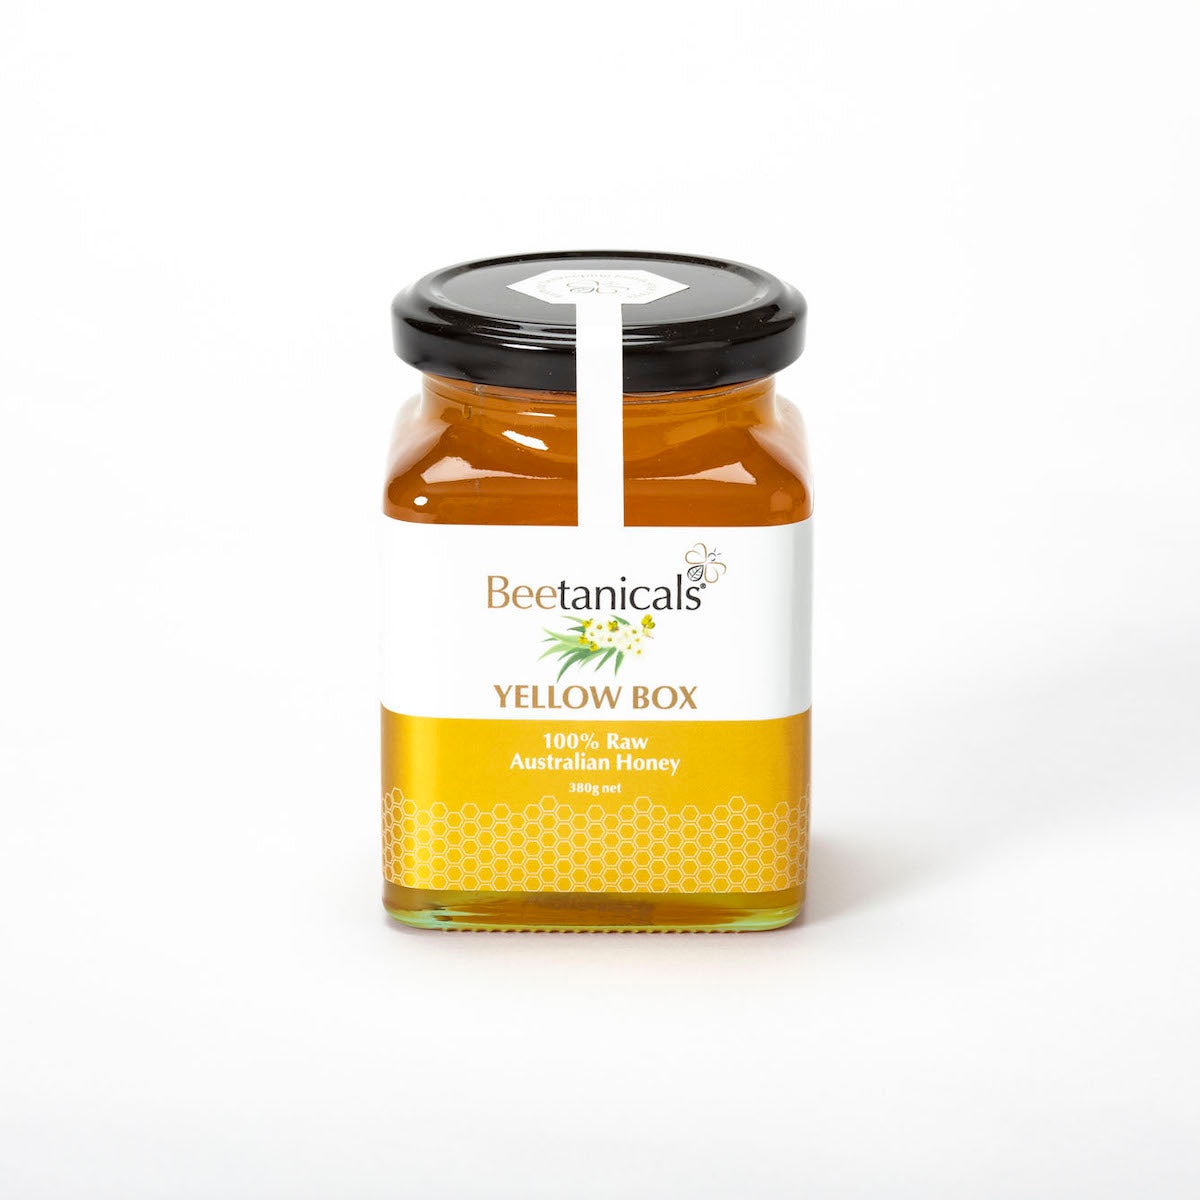 100% Raw Australian Yellow Box Honey 380g